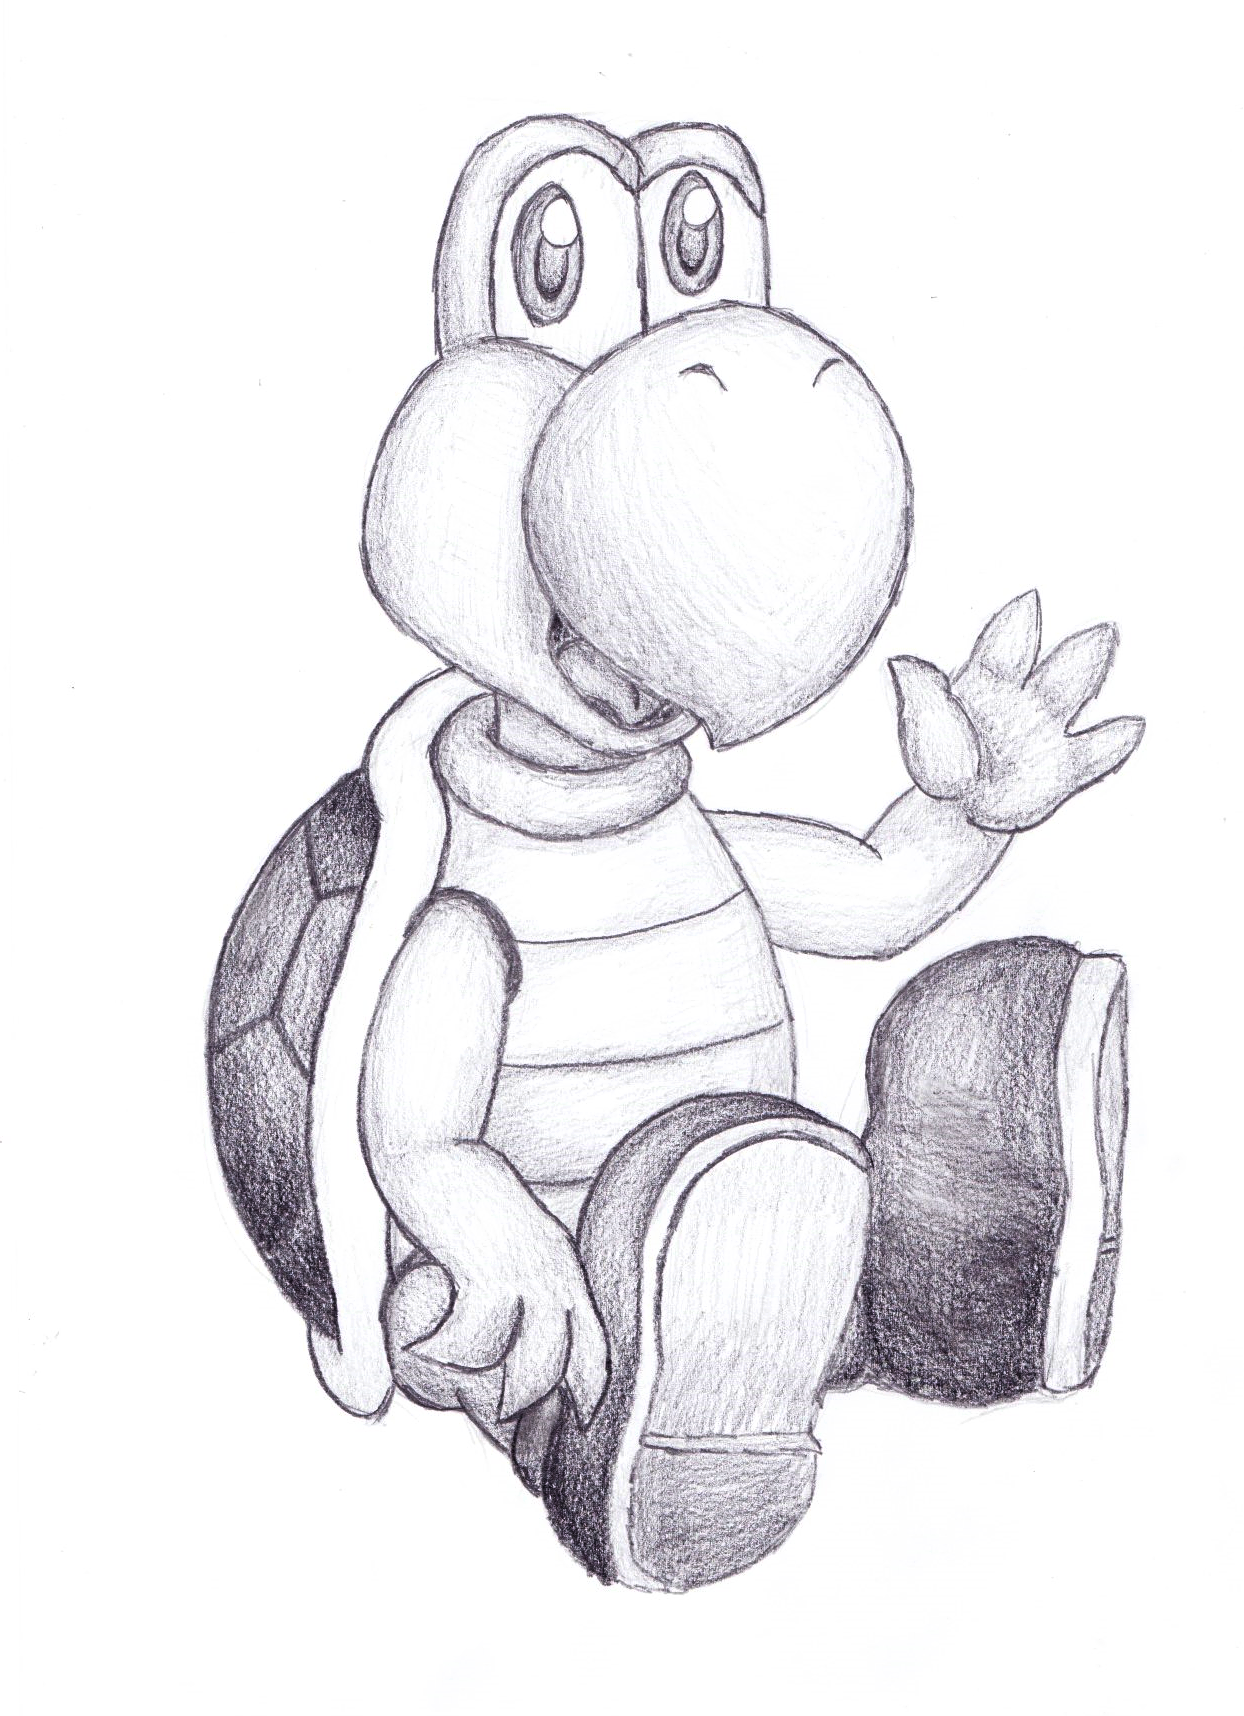 koopa troopa by jaukuwa on deviantart